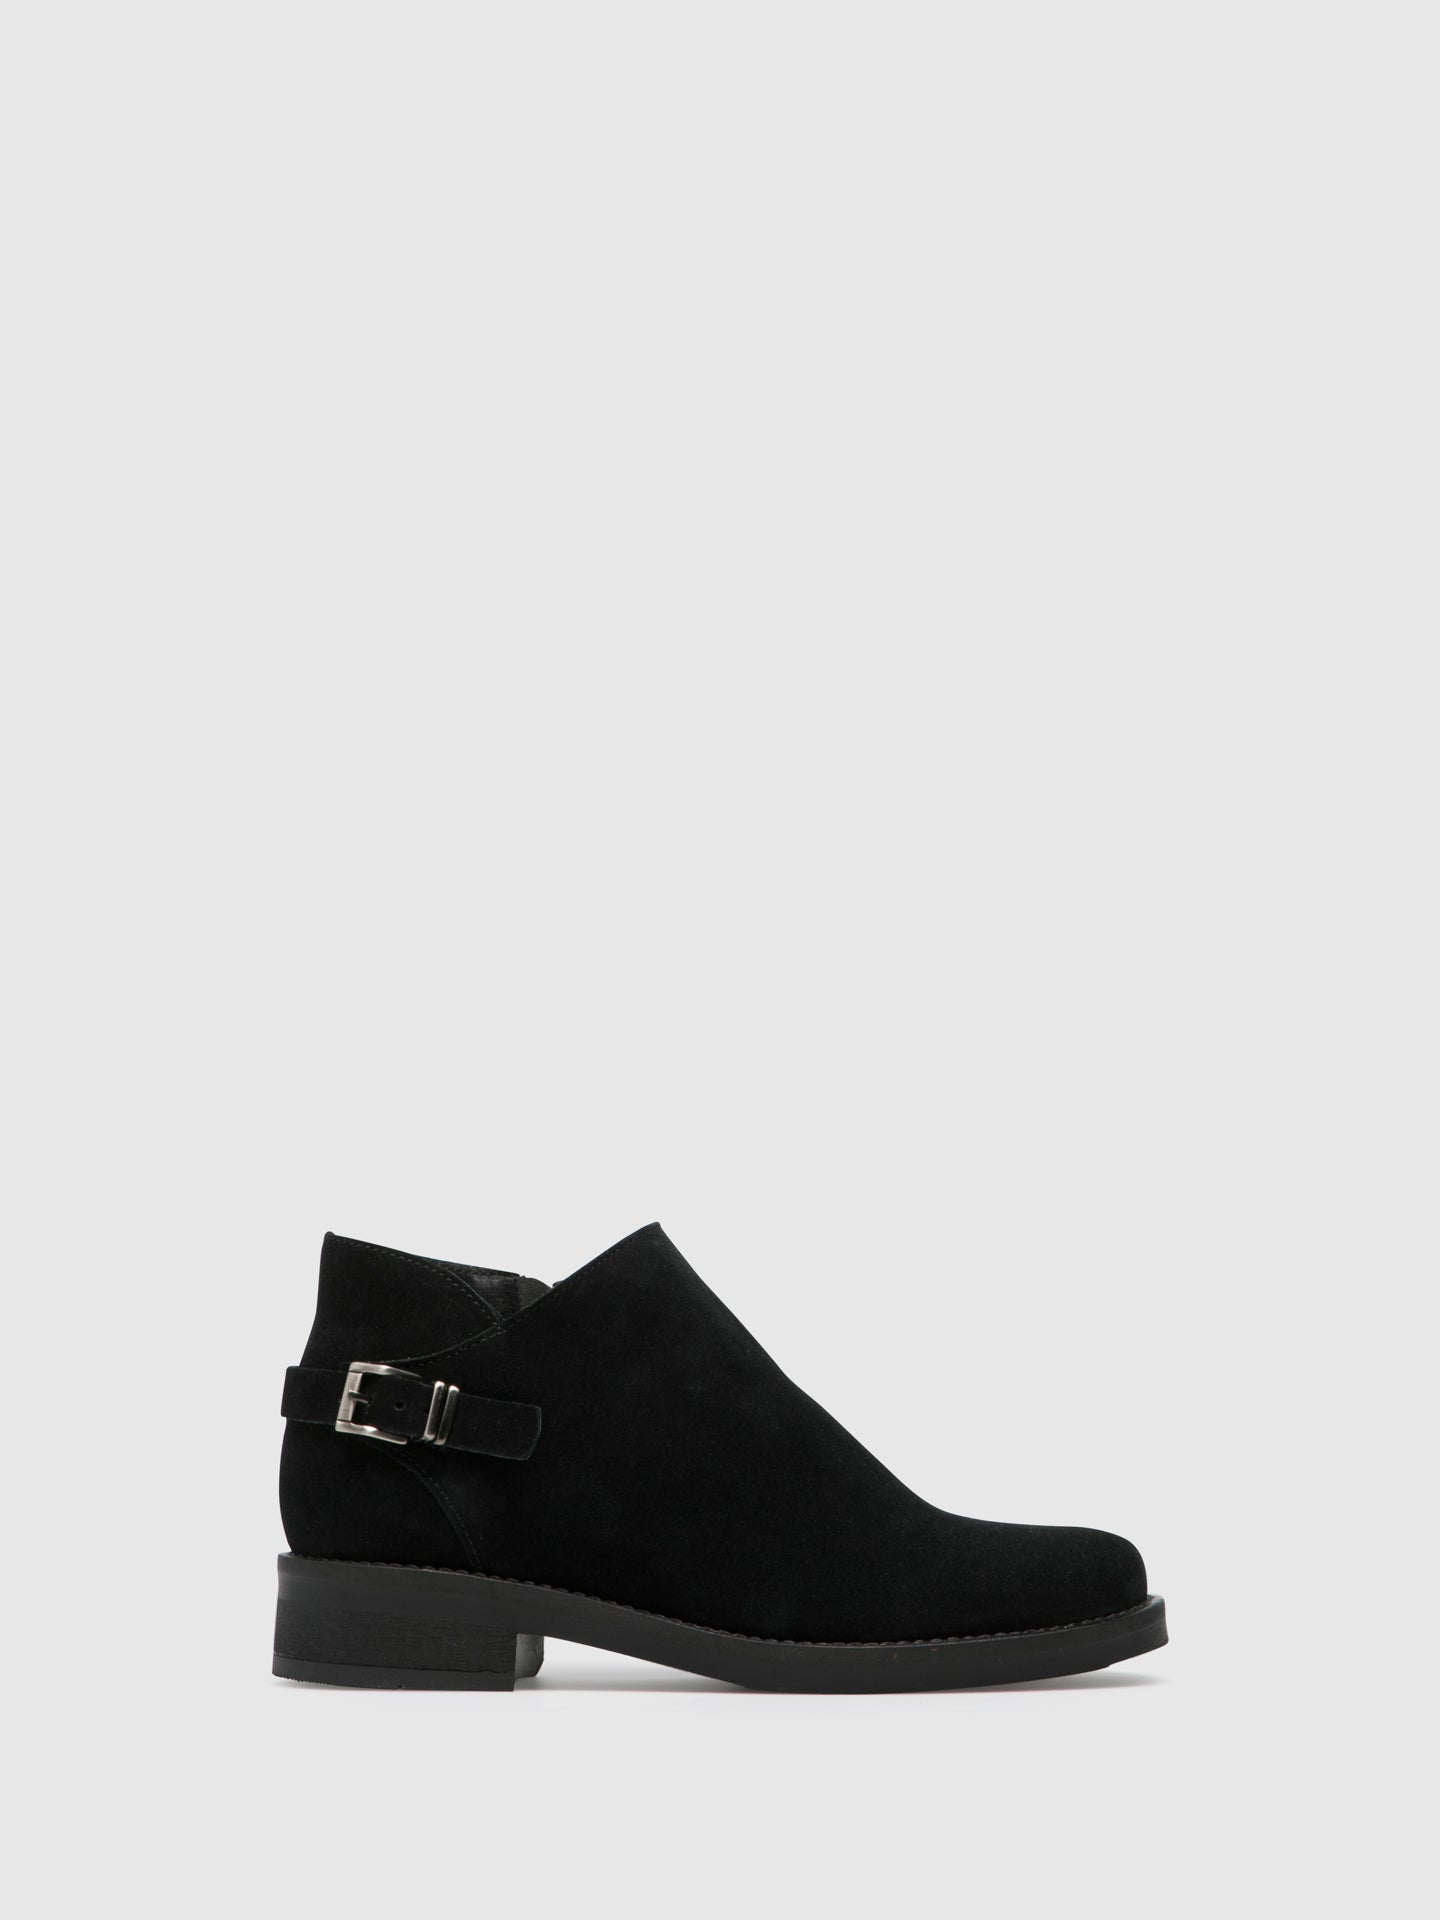 Foreva Black Suede Zip up Ankle Boots